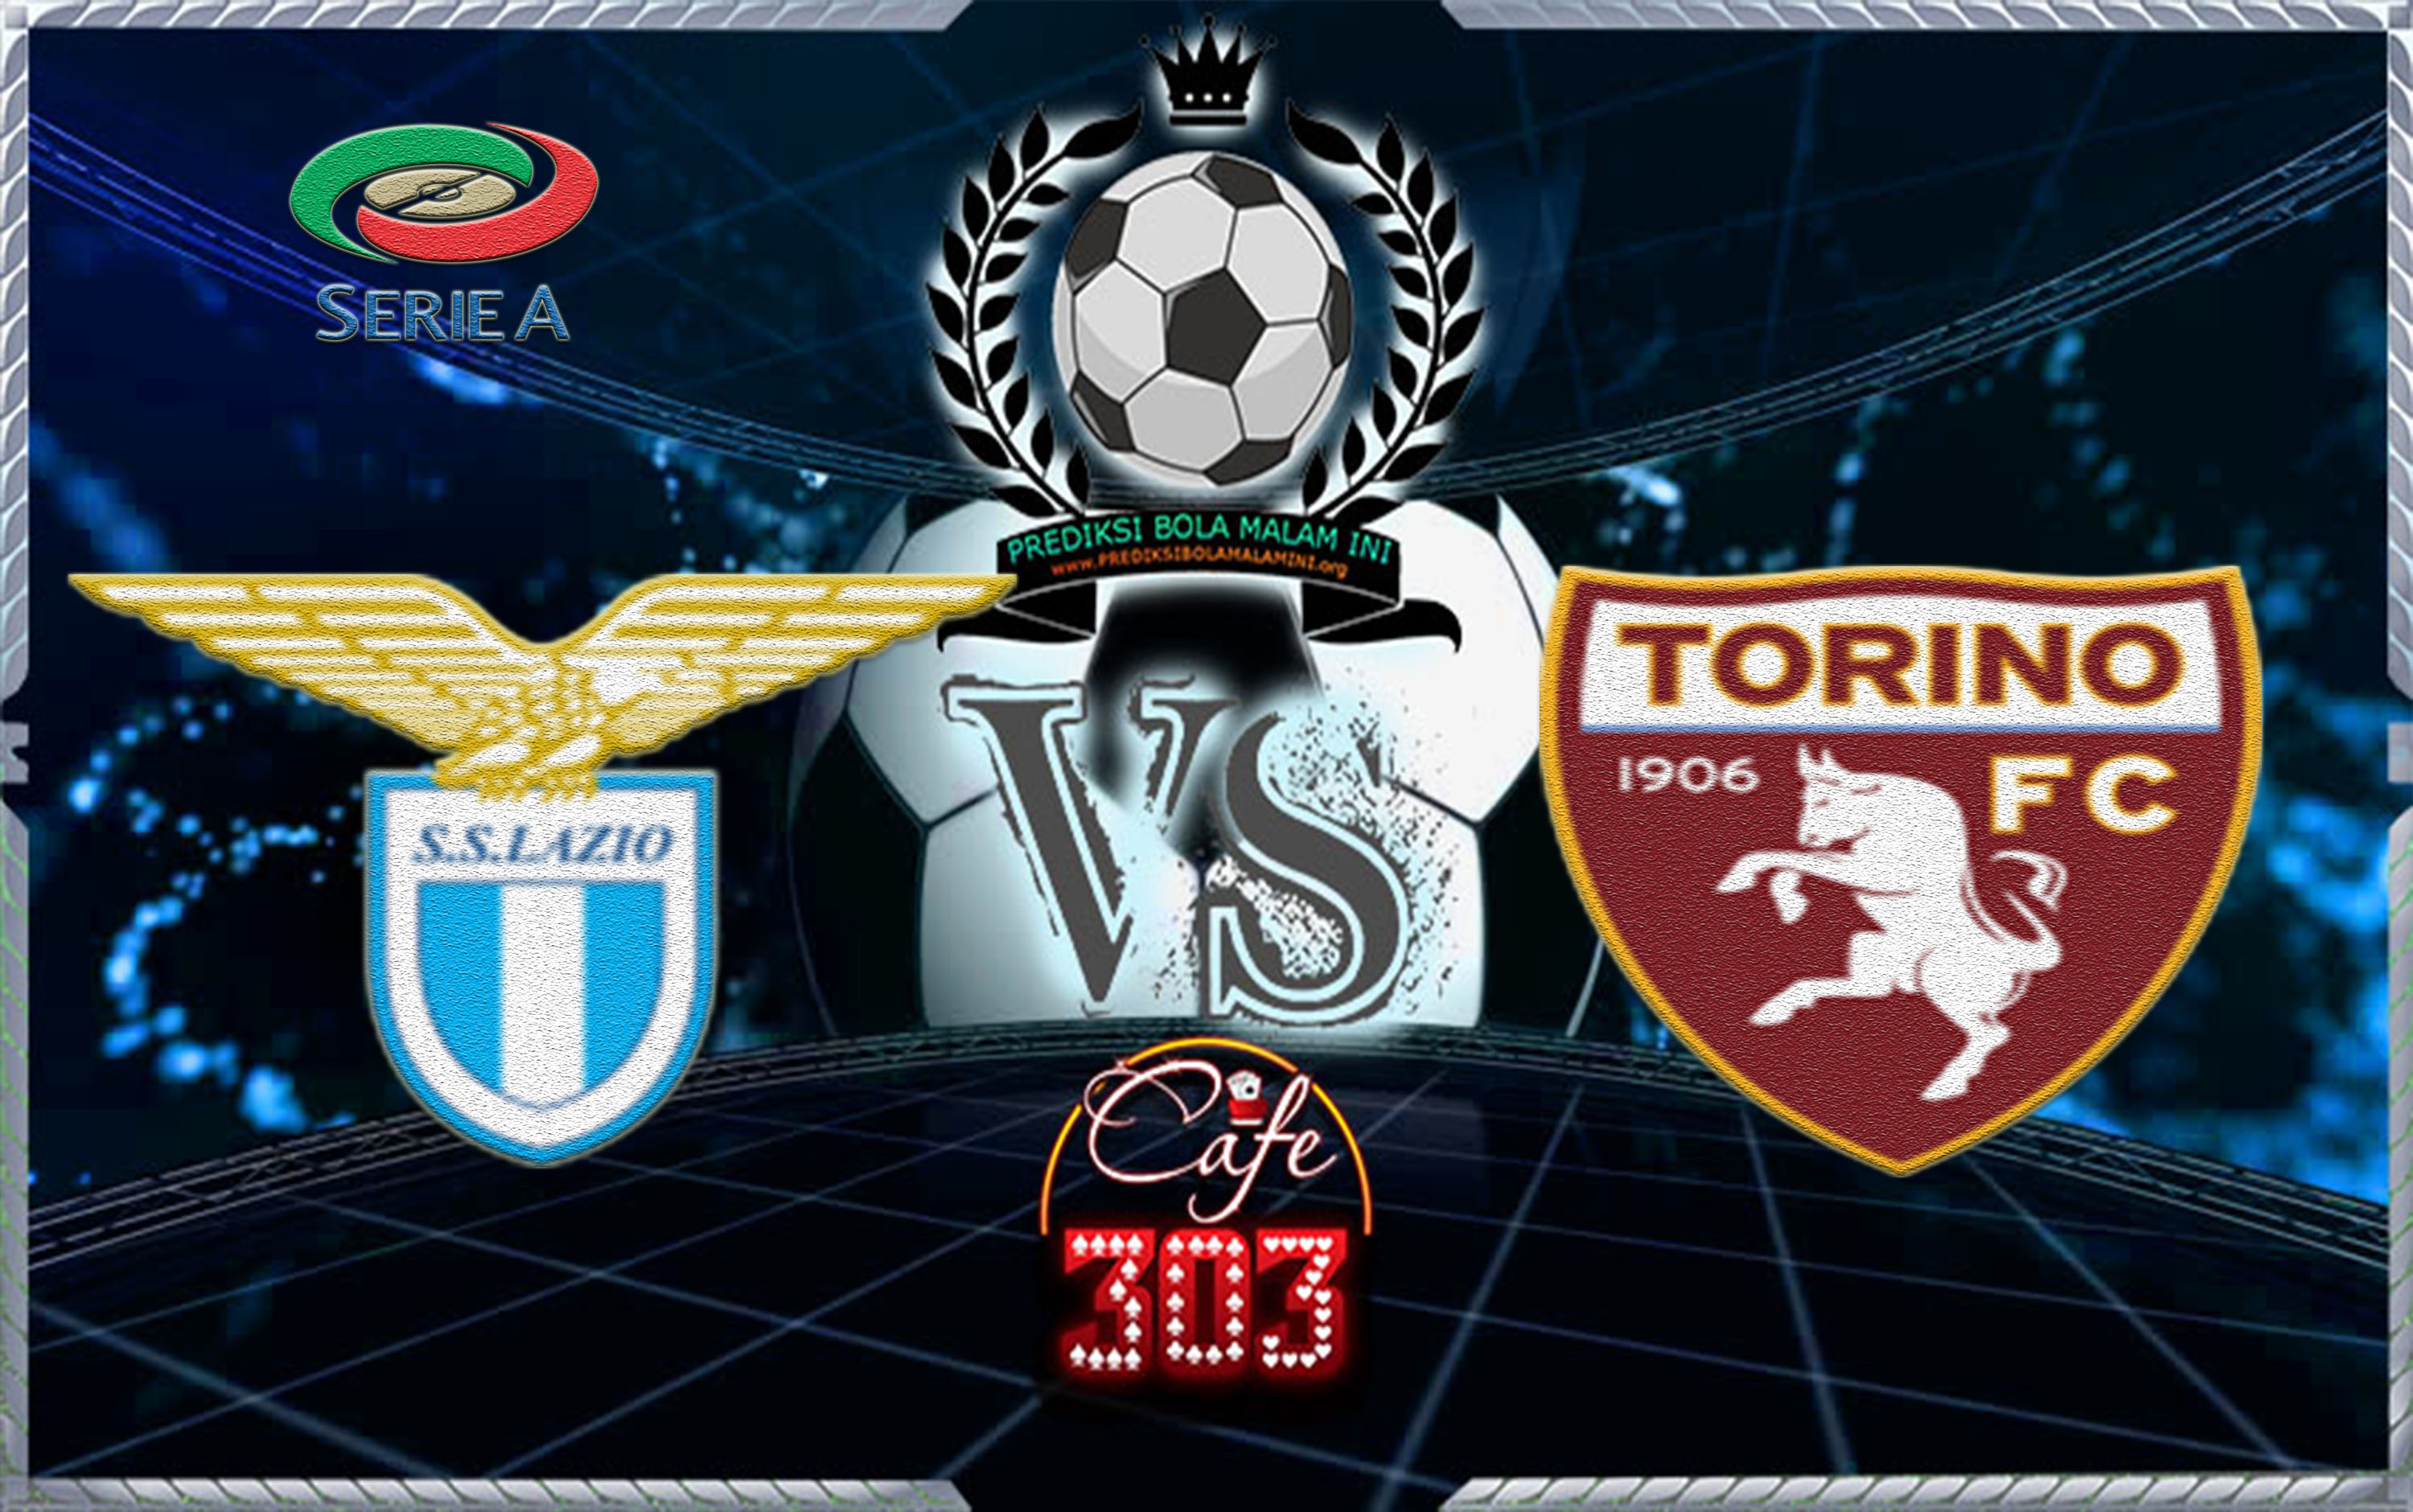 LAZIO VS TORINO &quot;width =&quot; 640 &quot;height =&quot; 401 &quot;/&gt; </p> <p> <strong> <strong> <strong> Prediksi Bola LAZIO Vs TORINO, Bursa Taruhan LAZIO Vs TORINO, Prediksi Sepatu LAZIO Vs TORINO, Prediksi Pertandanan LAZIO Vs TORINO, Hasil Sepatu LAZIO Vs TORINO, LAZIO Vs TORINO </strong> </span> &#8211; yang akan di adakan pada tanggal 12 Desember 2017 Pada Pukul 03:00 WIB Di Stadion Stadion Olimpico (Roma) </p> <p> <span style=